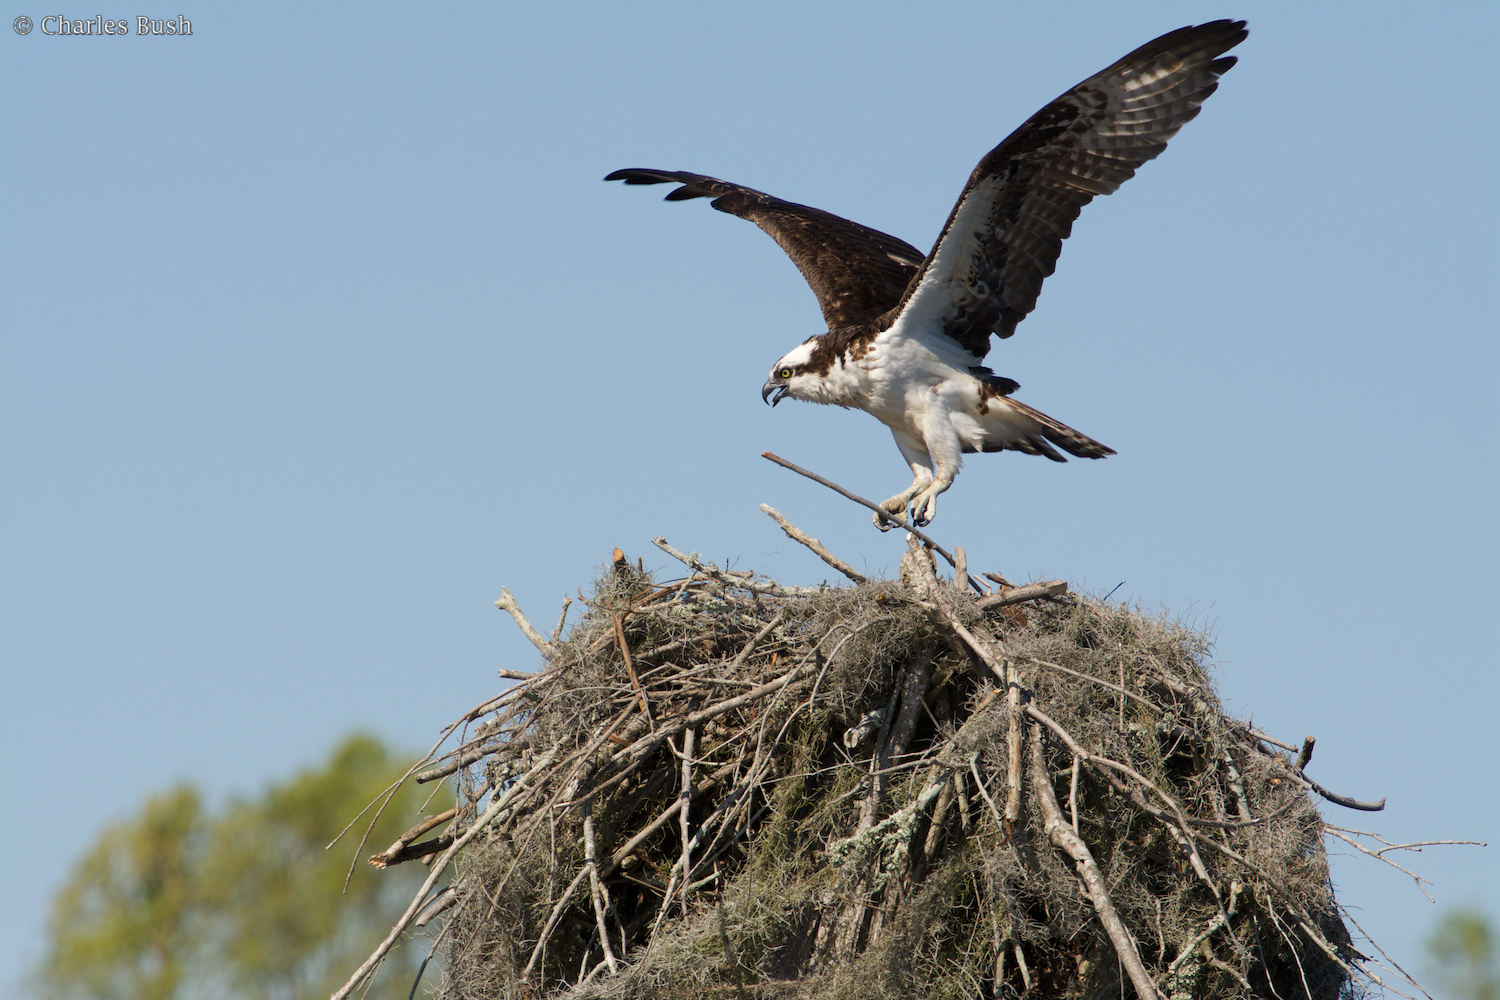 Osprey bringing Stick to the Nest